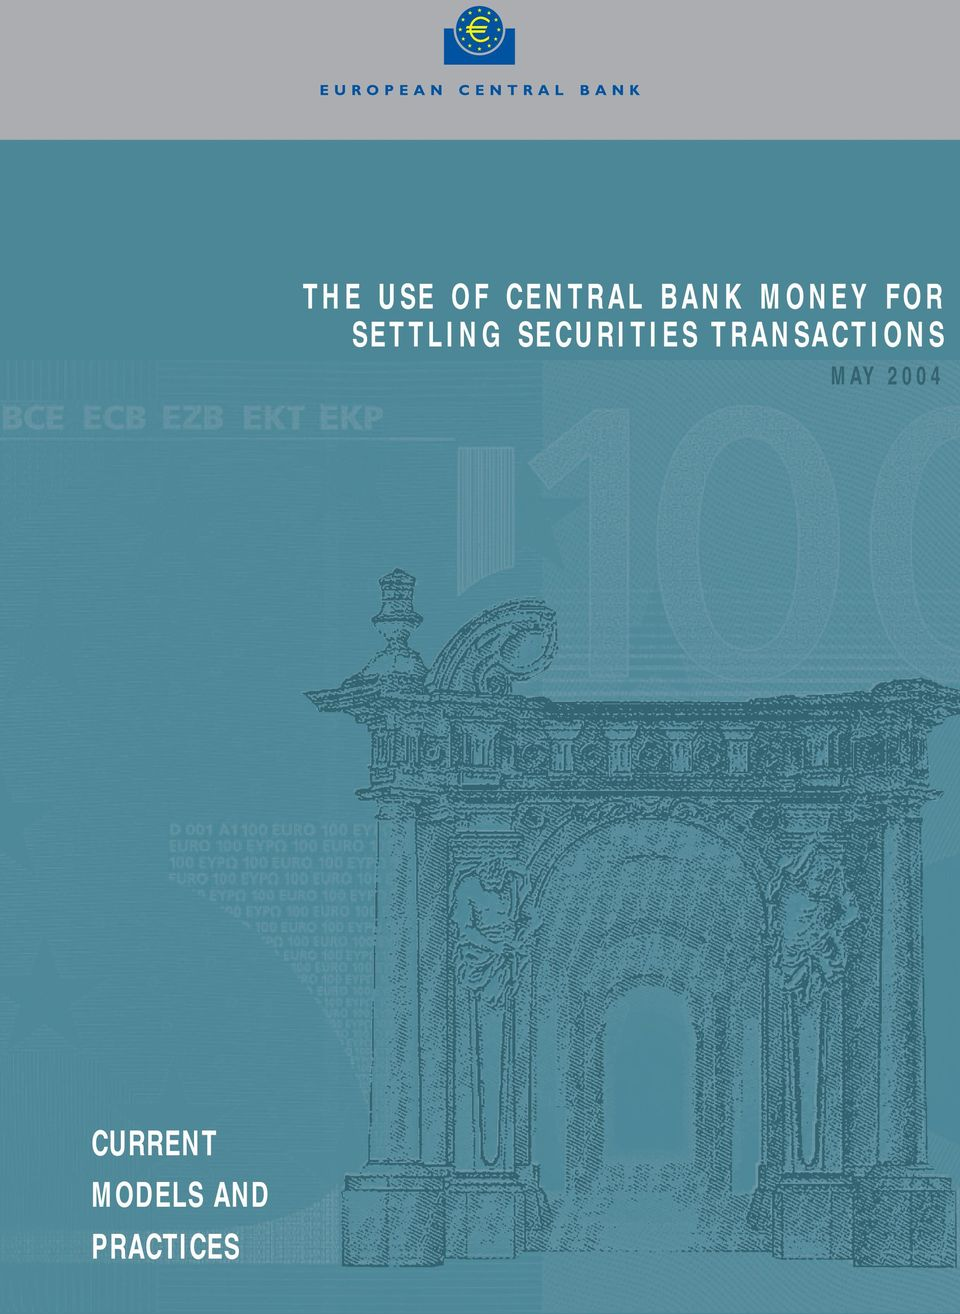 SECURITIES TRANSACTIONS